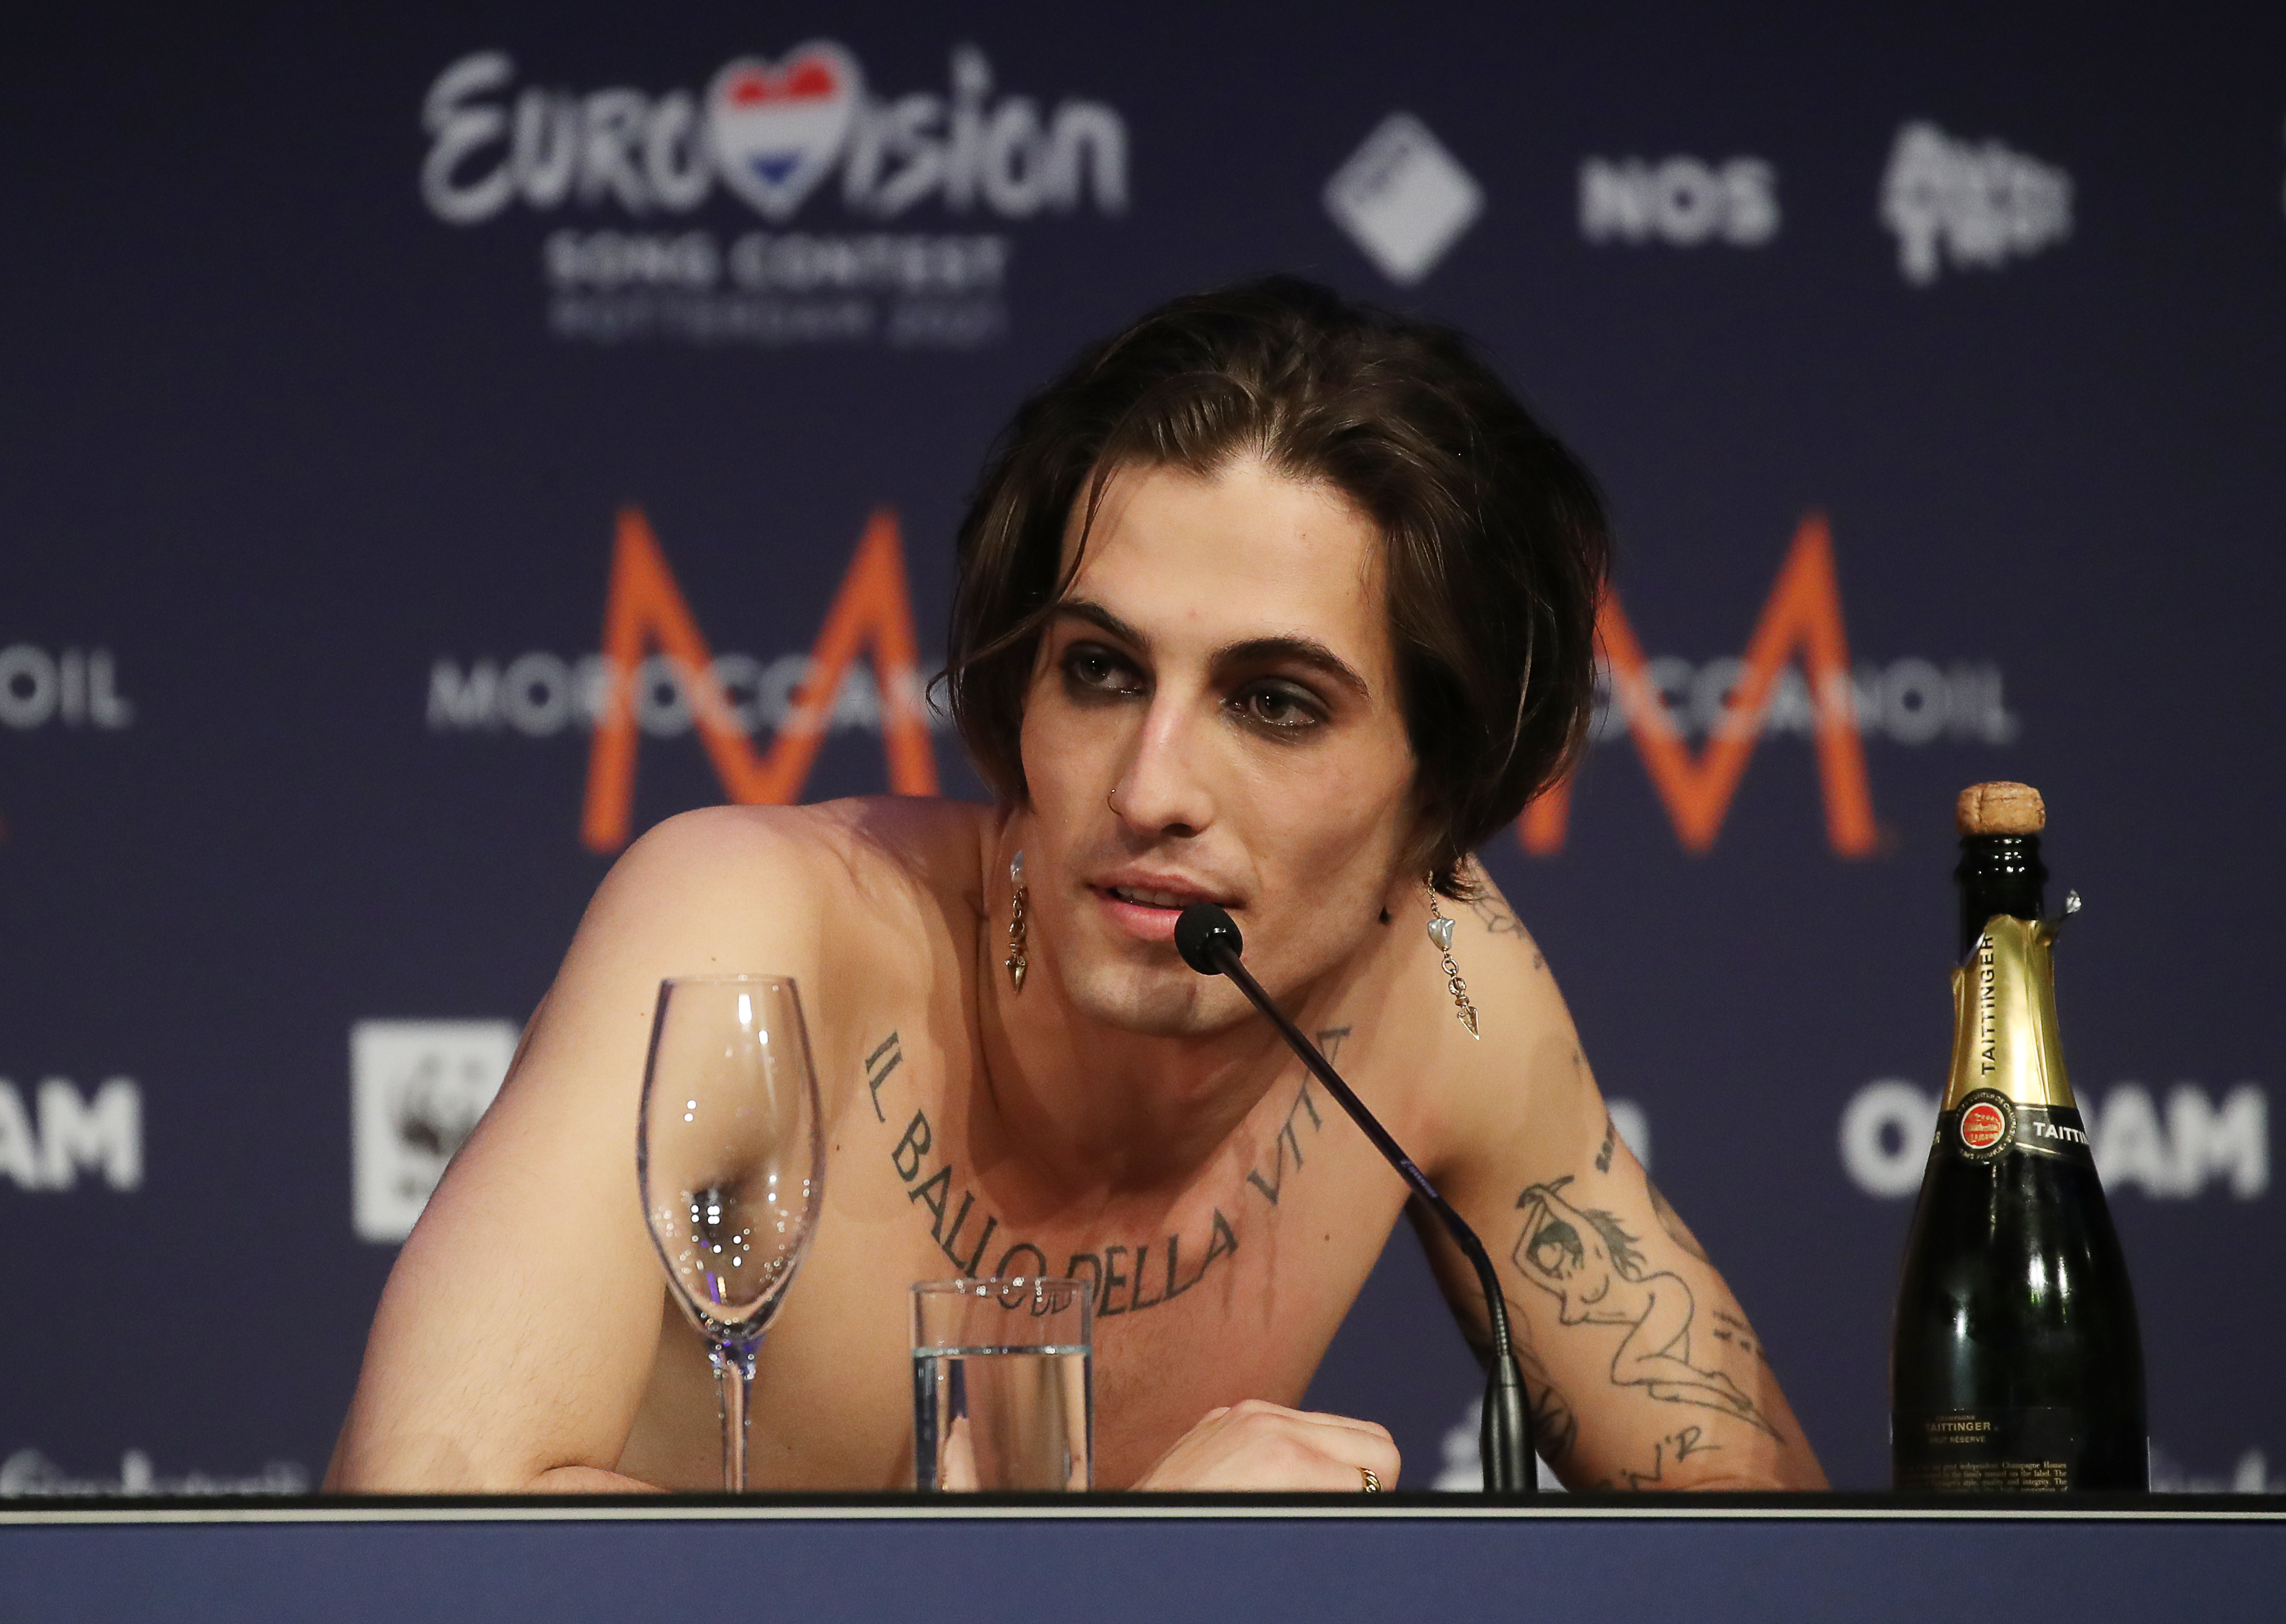 Eurovision 2021 highlights: Italy reps for rock, Flo Rida reps for San Marino, 'Fire Saga' actor reps for 'Jaja Ding Dong' fans